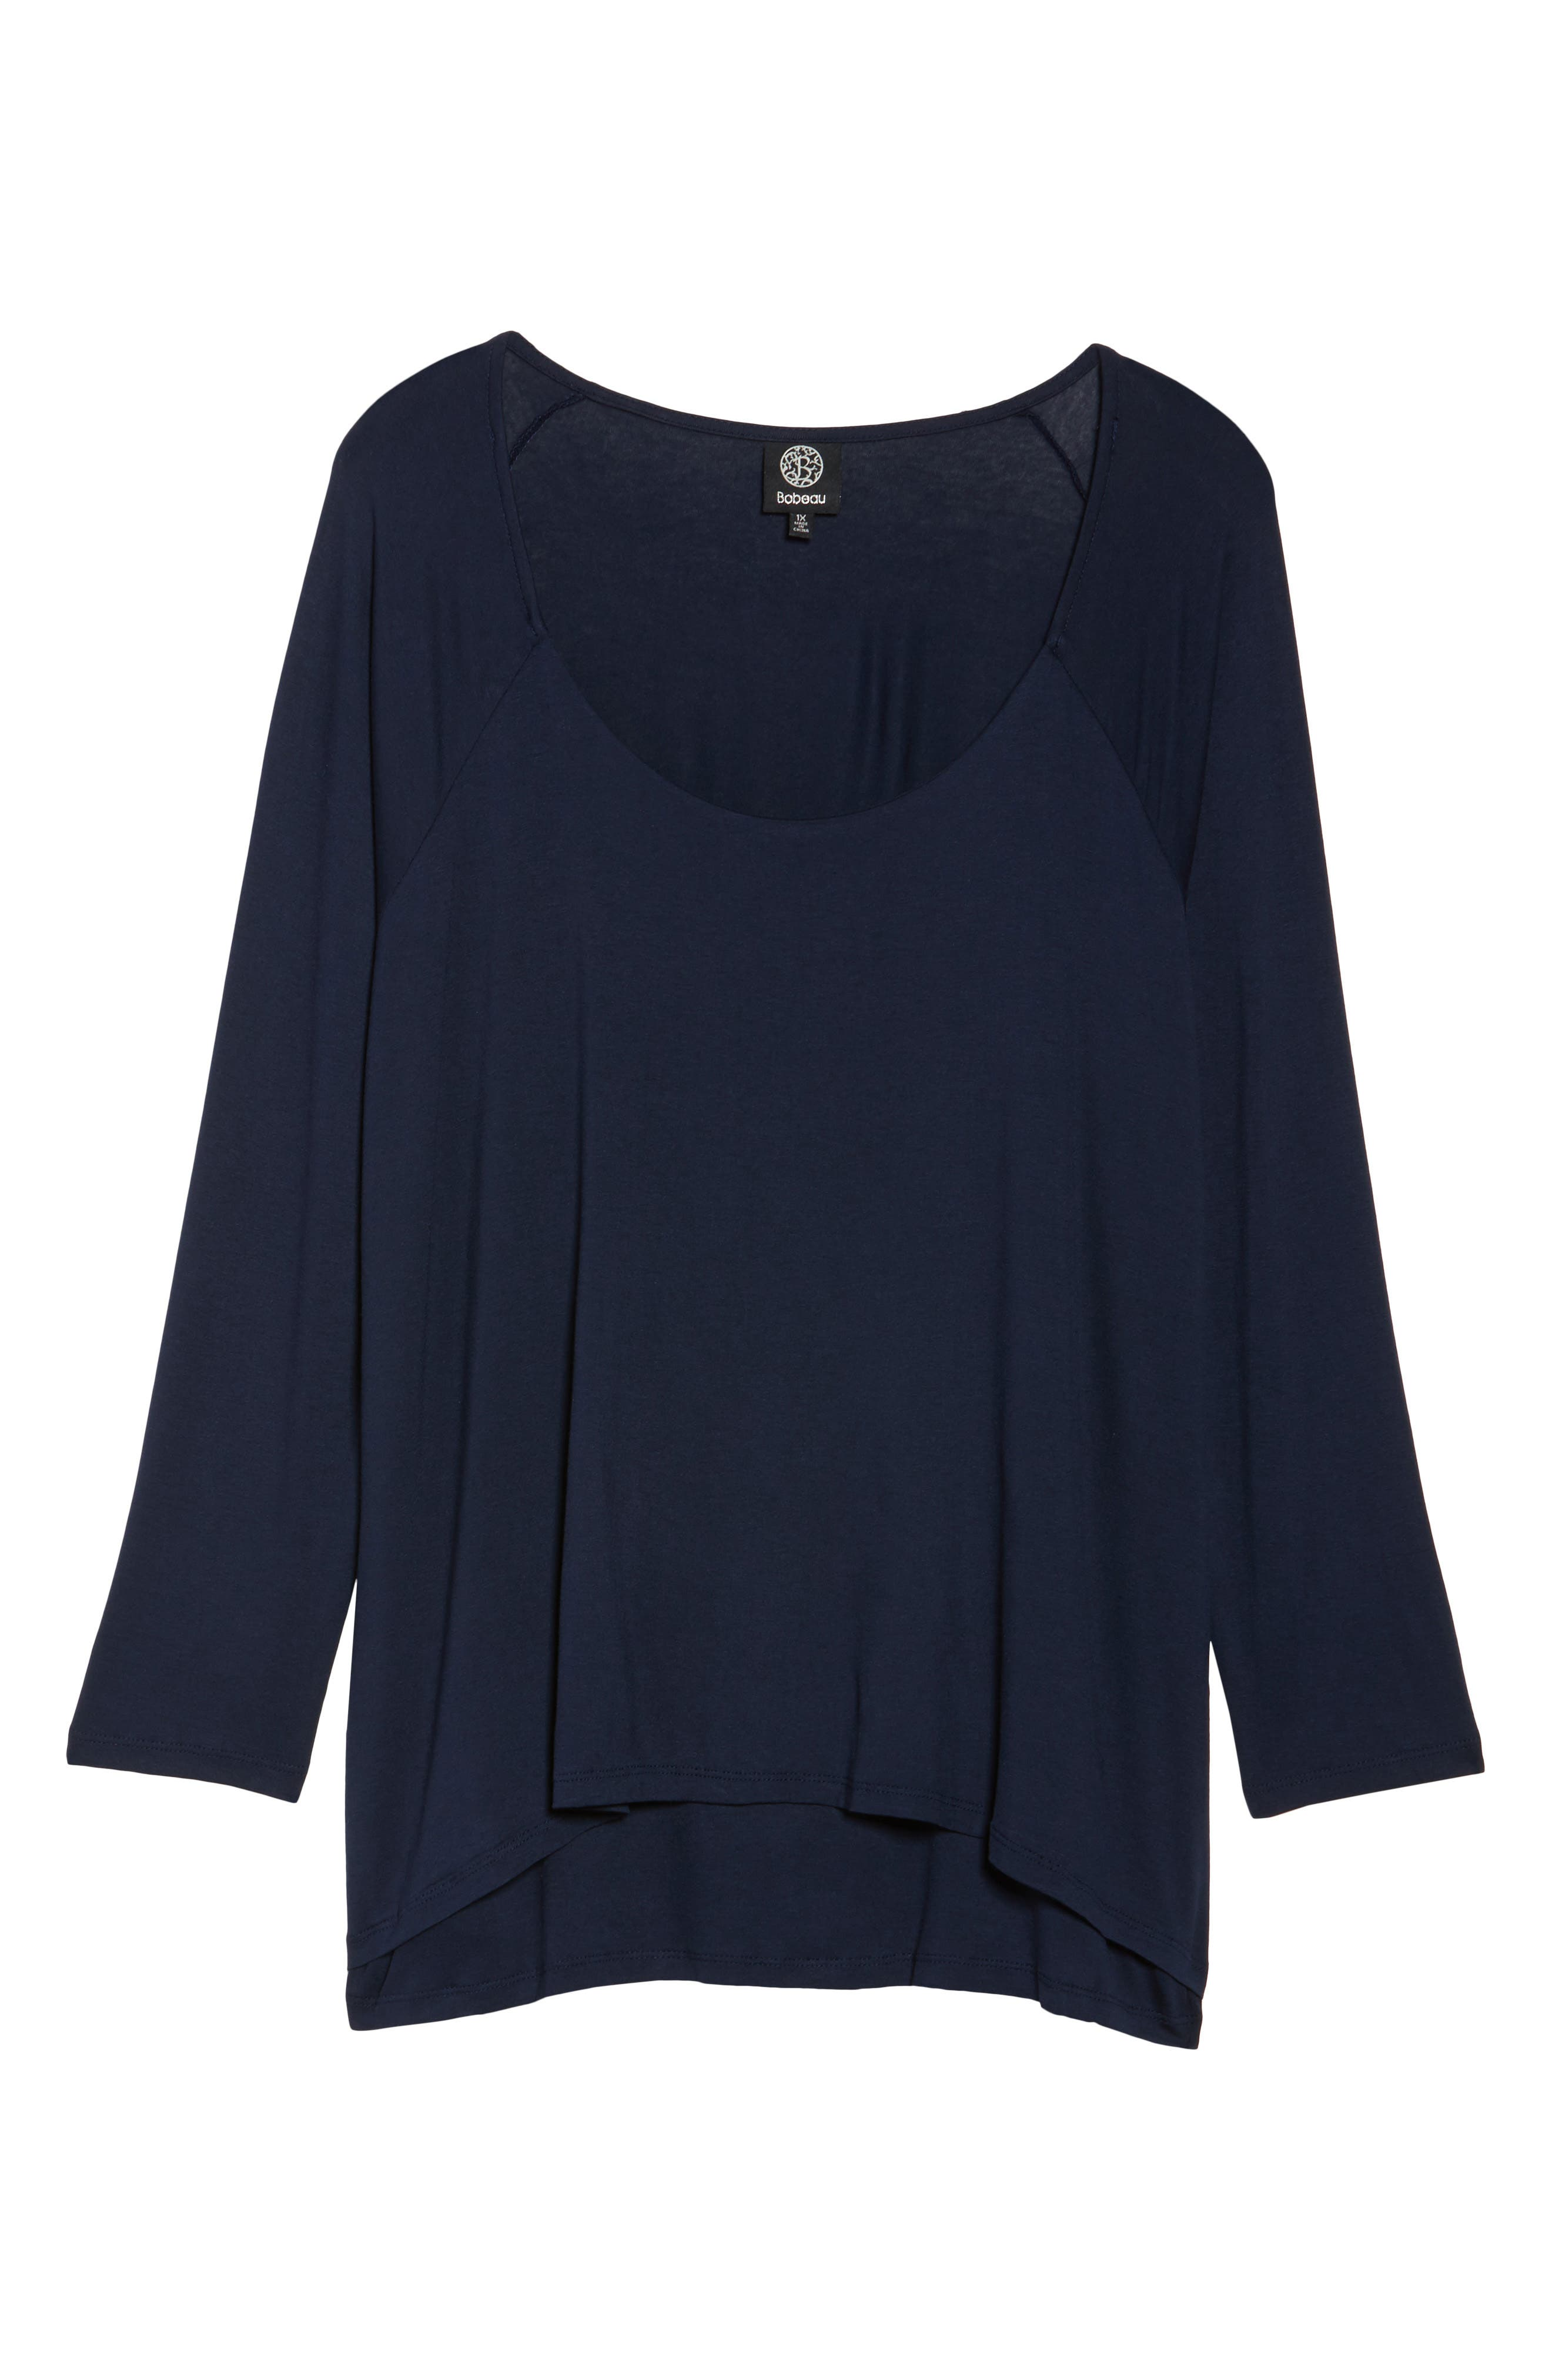 Layered Knit Top,                             Alternate thumbnail 6, color,                             Navy